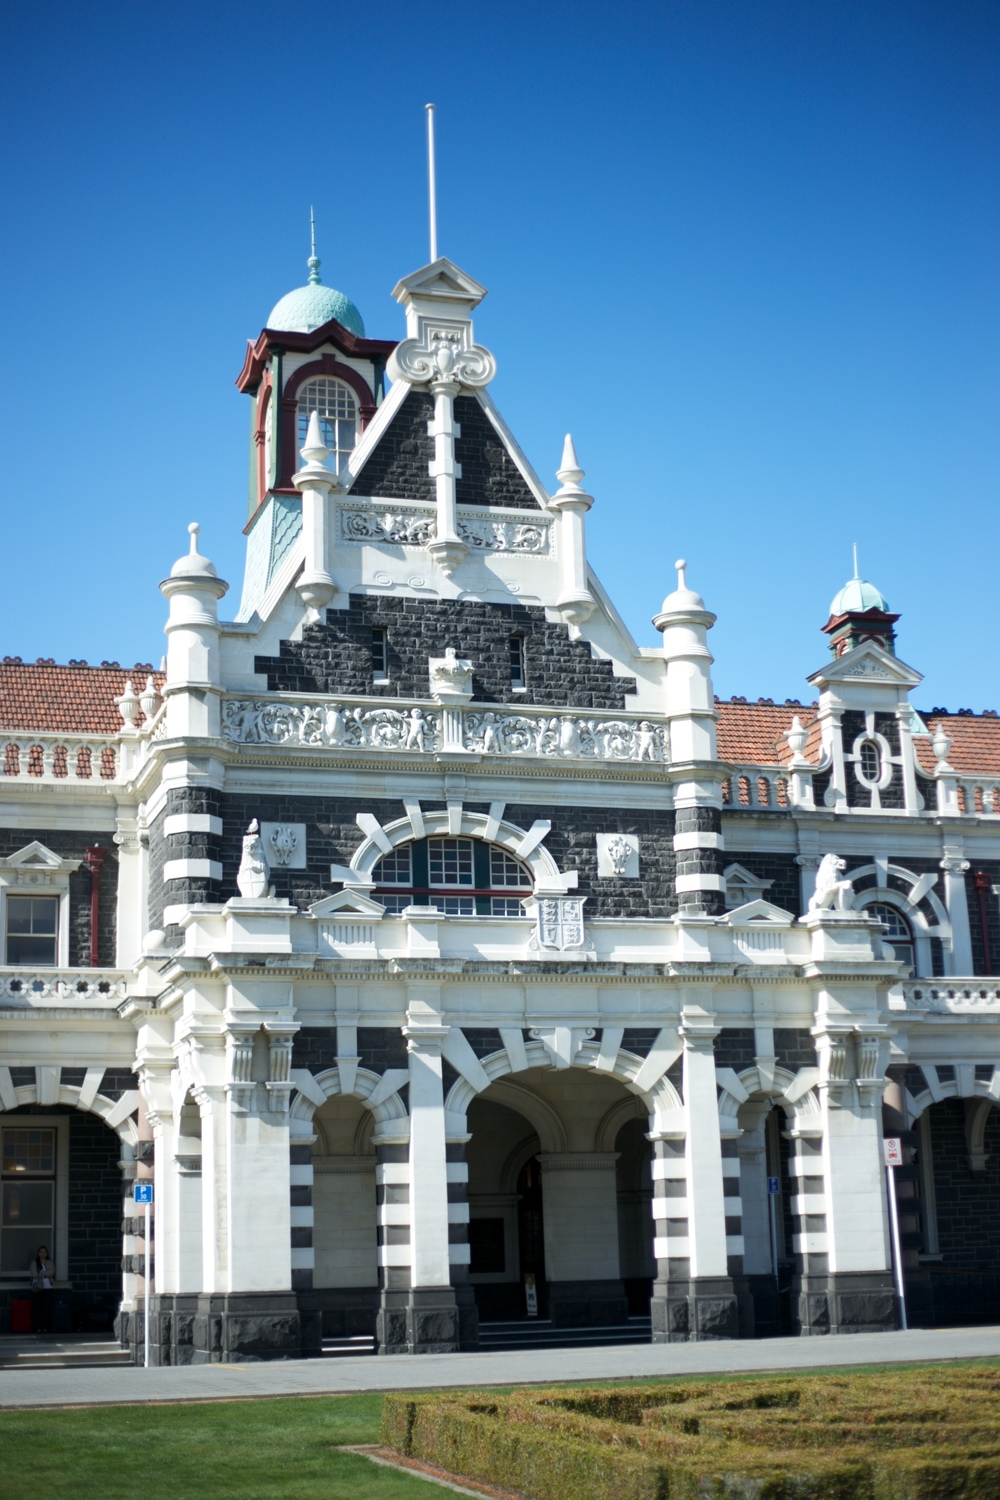 The Dunedin Railway Station, NZ.